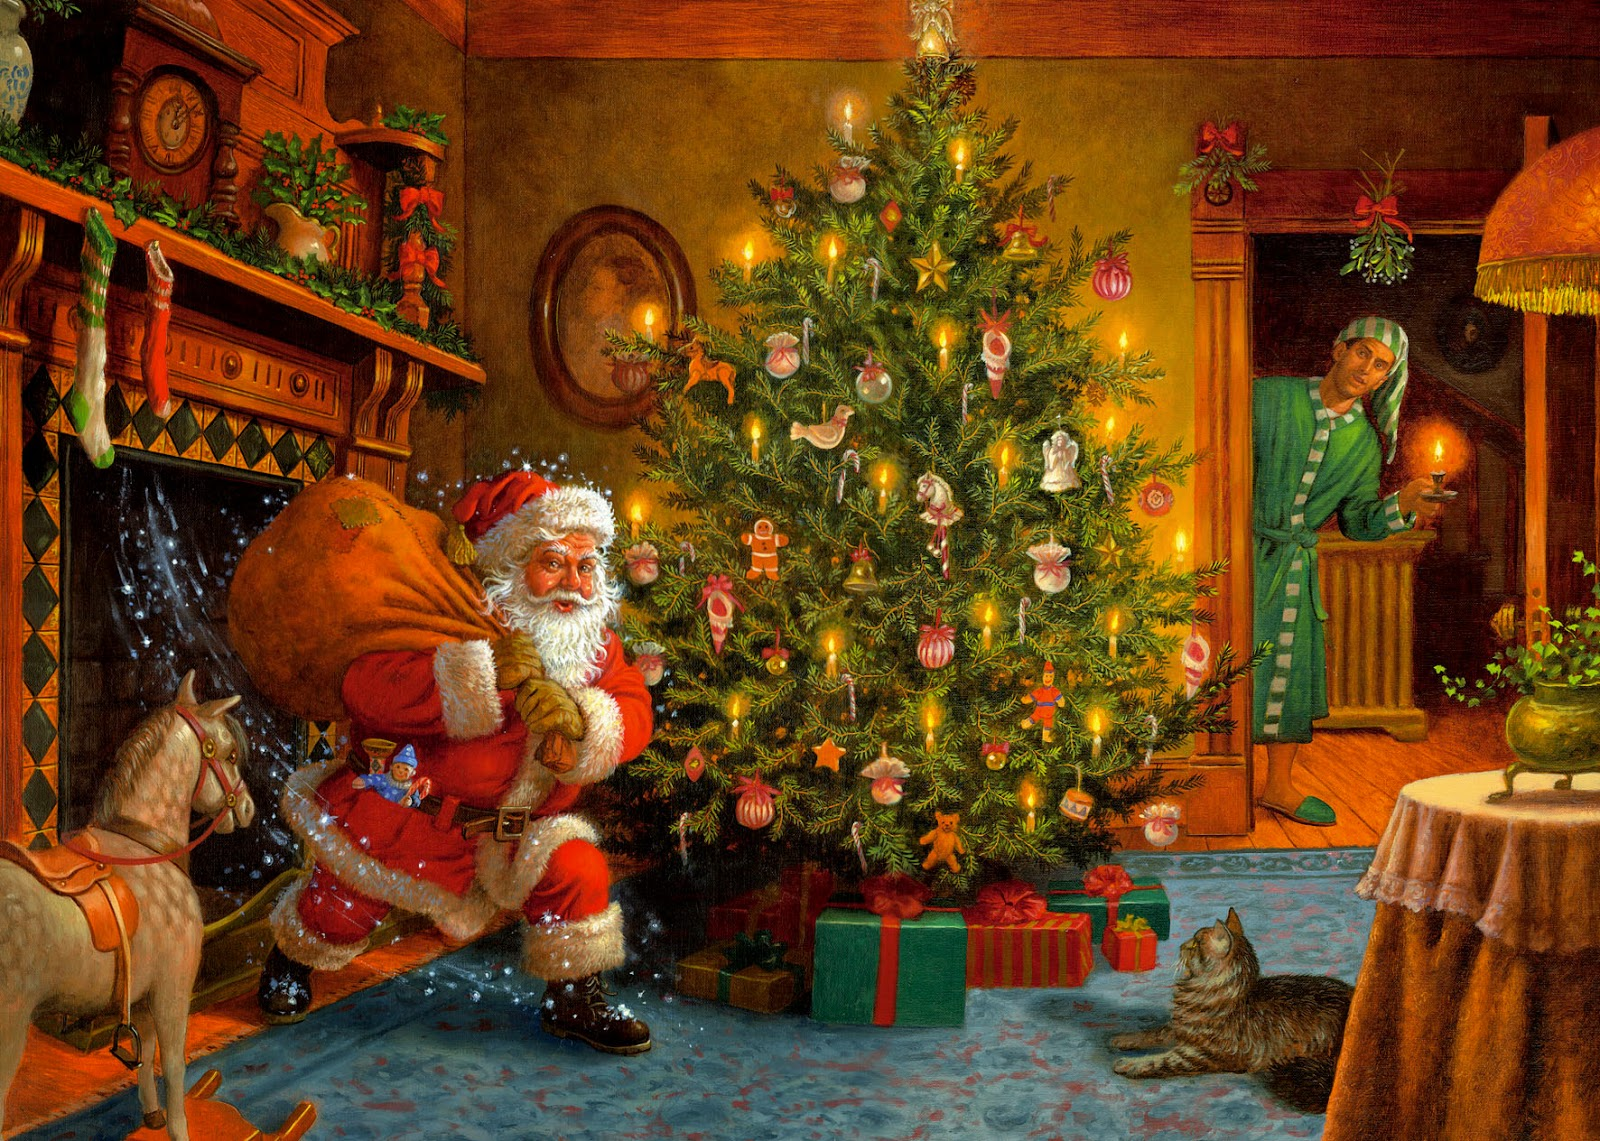 Santa enters house through chimney placing secret gifts ...